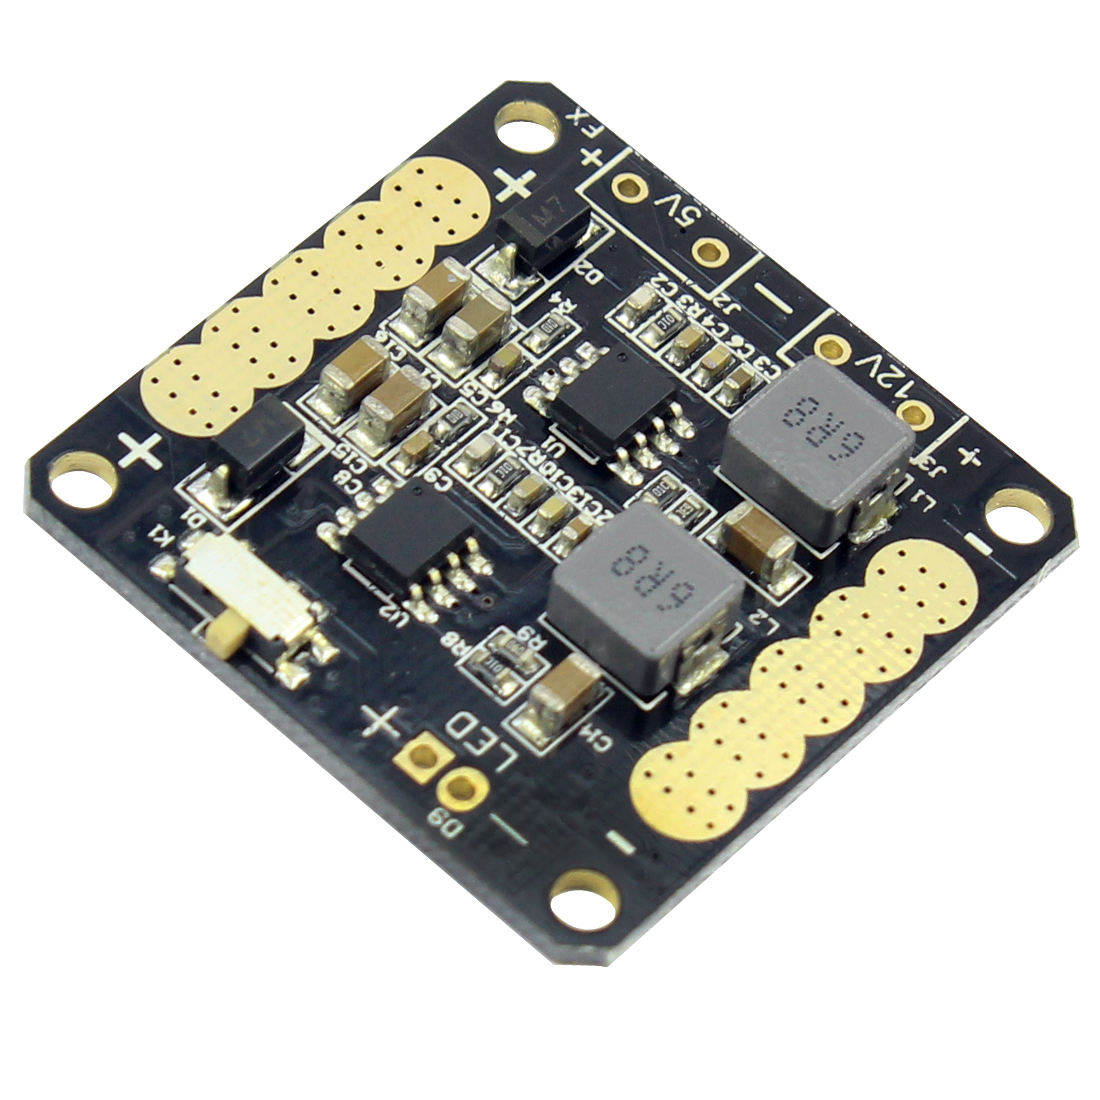 F14708 CC3D Flight Controller Power Distribution Board with 5V/12V BEC Output LED Switch for FPV RC 250 Across Quadcopter + FS image